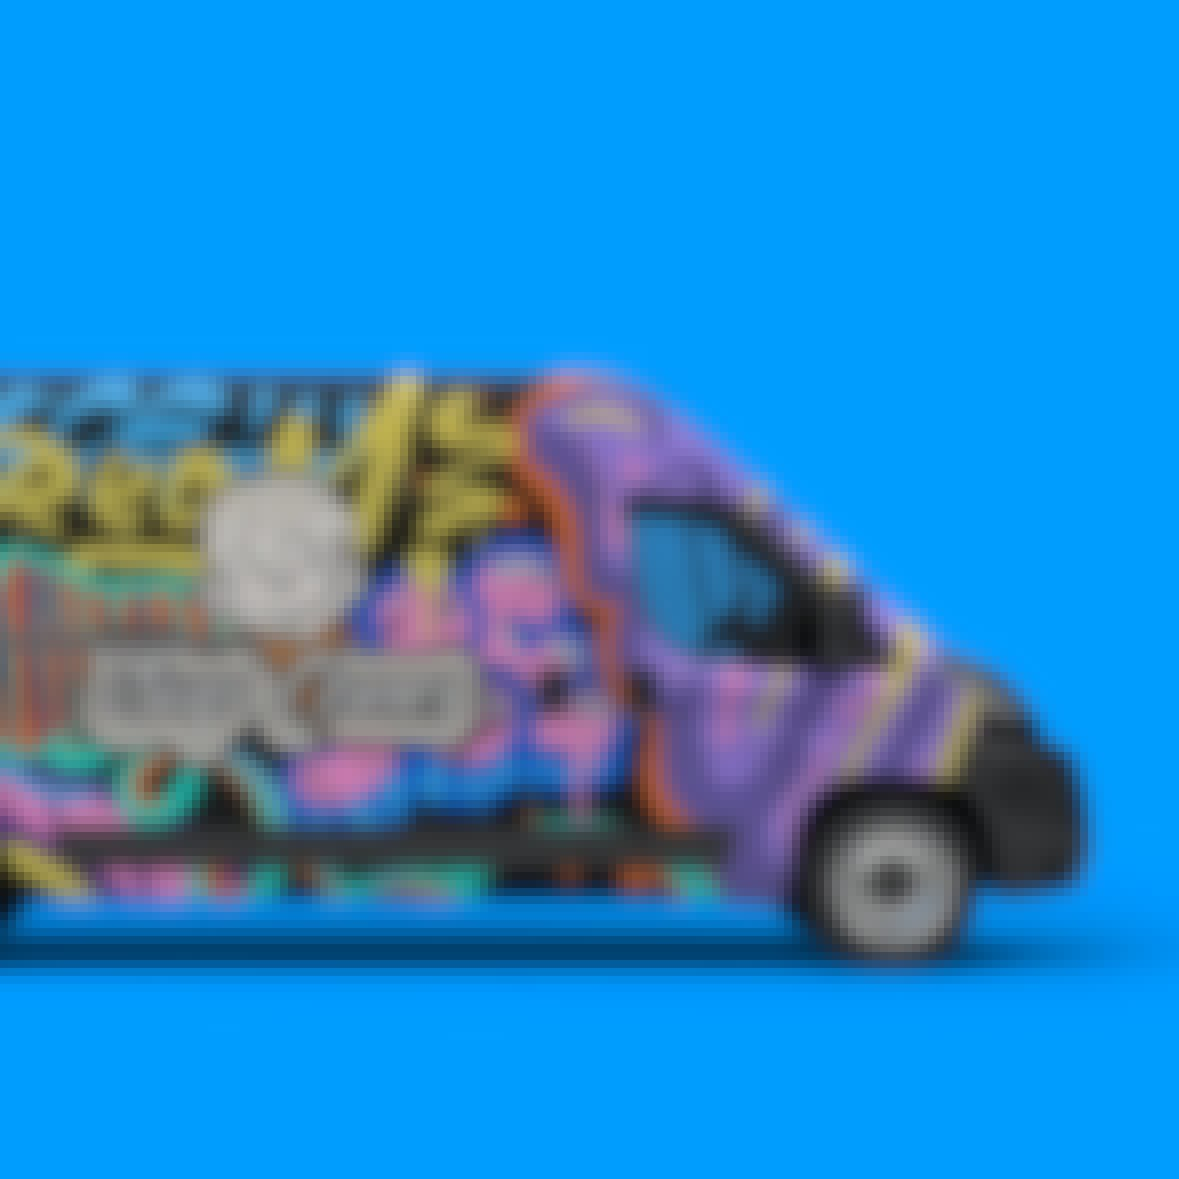 A van with grafitti on its exterior